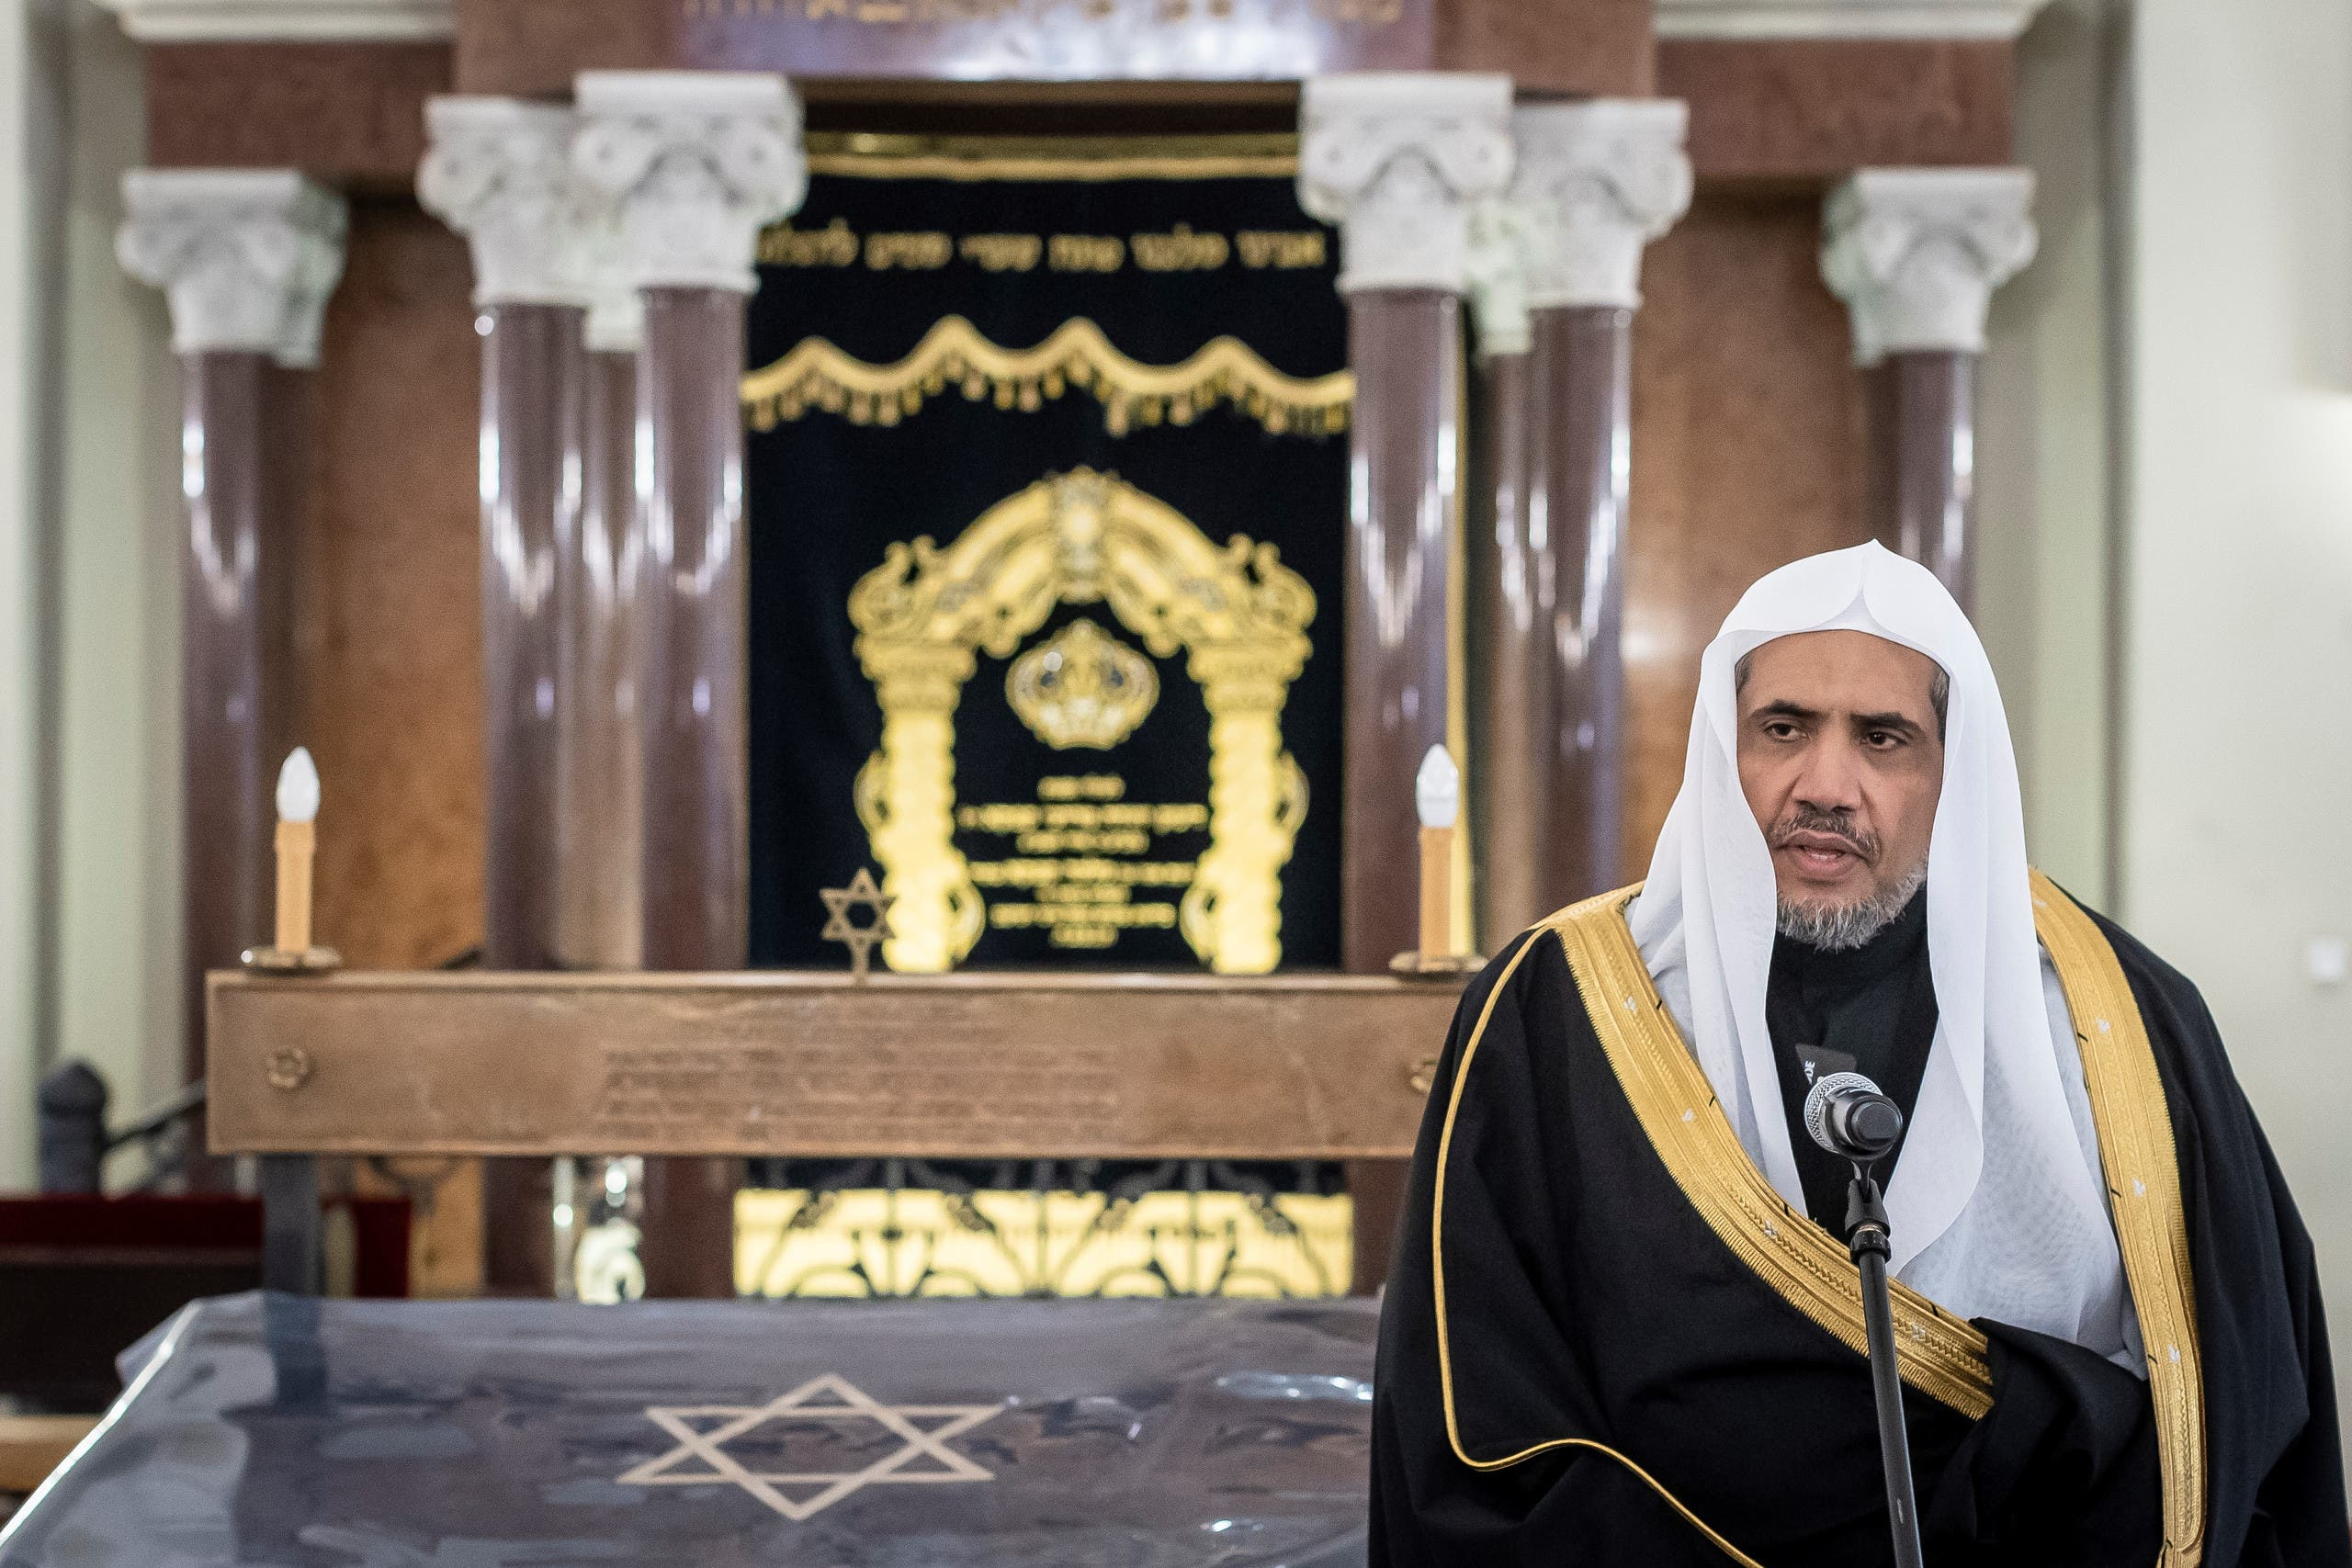 Secretary General of the Muslim World League Mohammad Abdulkarim al-Issa gives a speech during a visit to the Nozyk Synagogue on January 24, 2020 in Warsaw. (AFP)